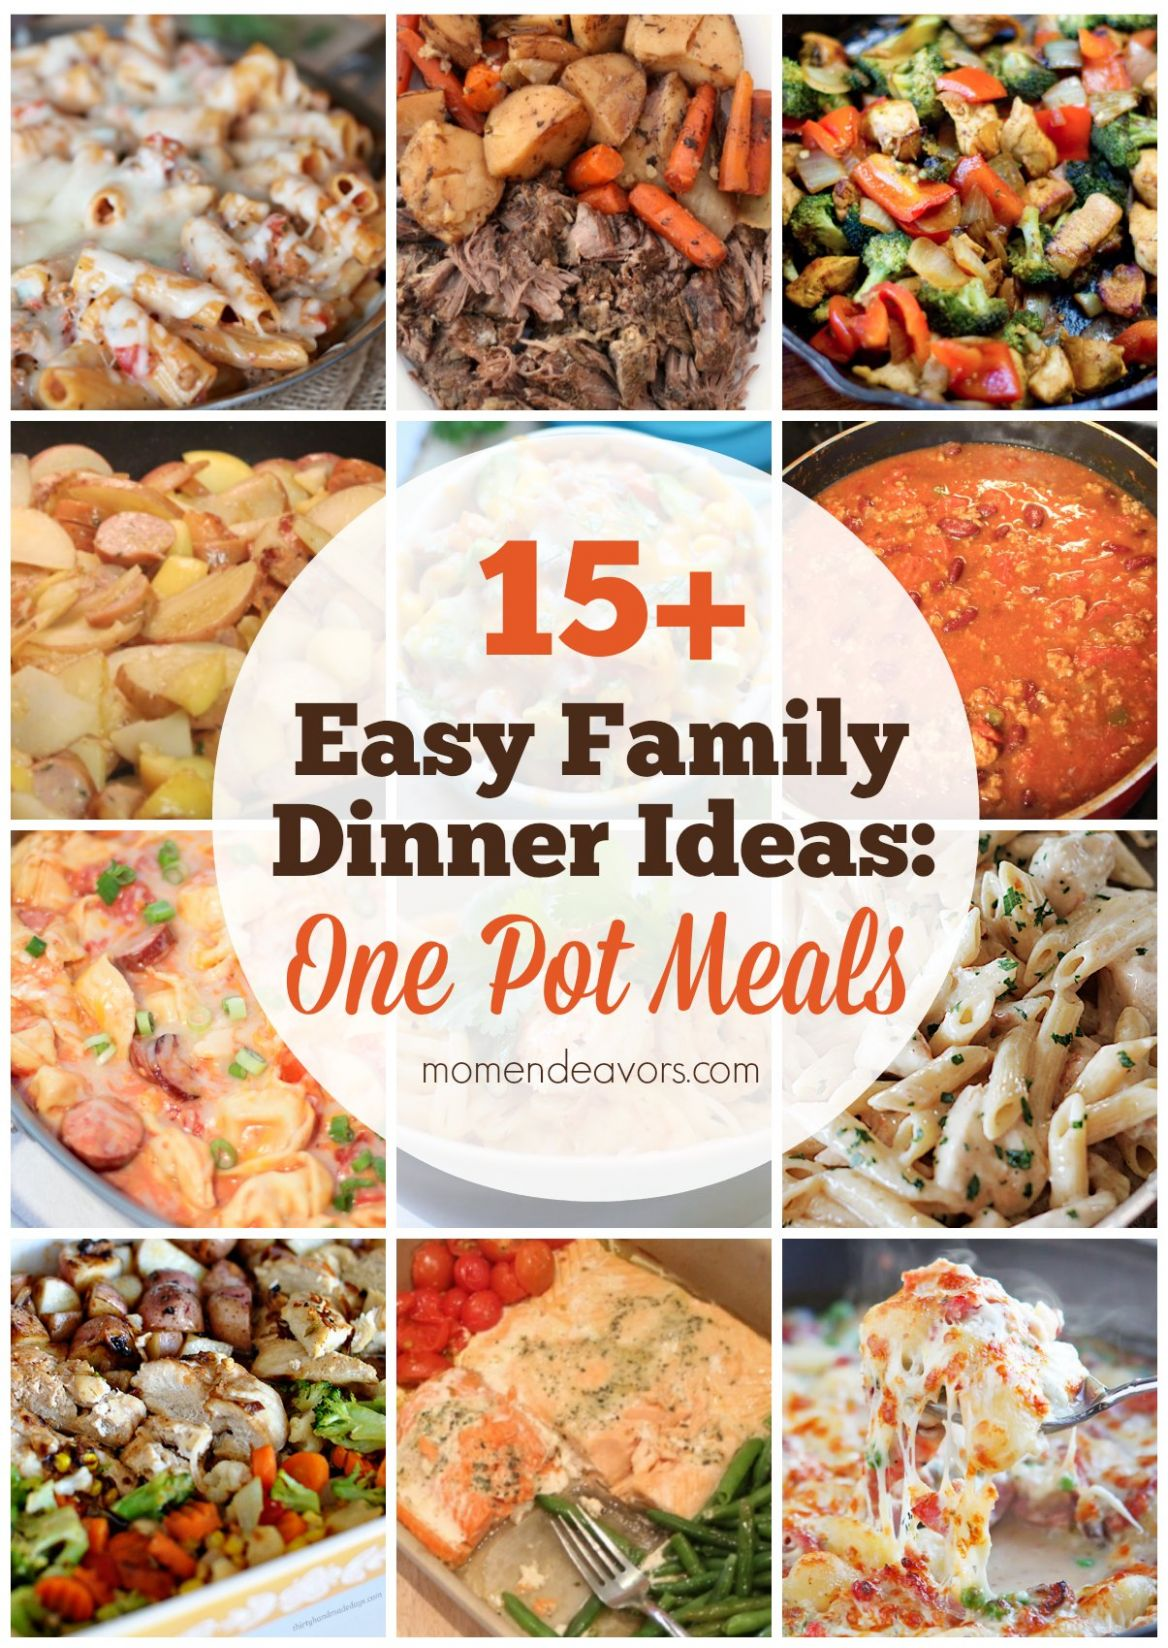 11+ Easy One Pot Family Dinners - Mom Endeavors